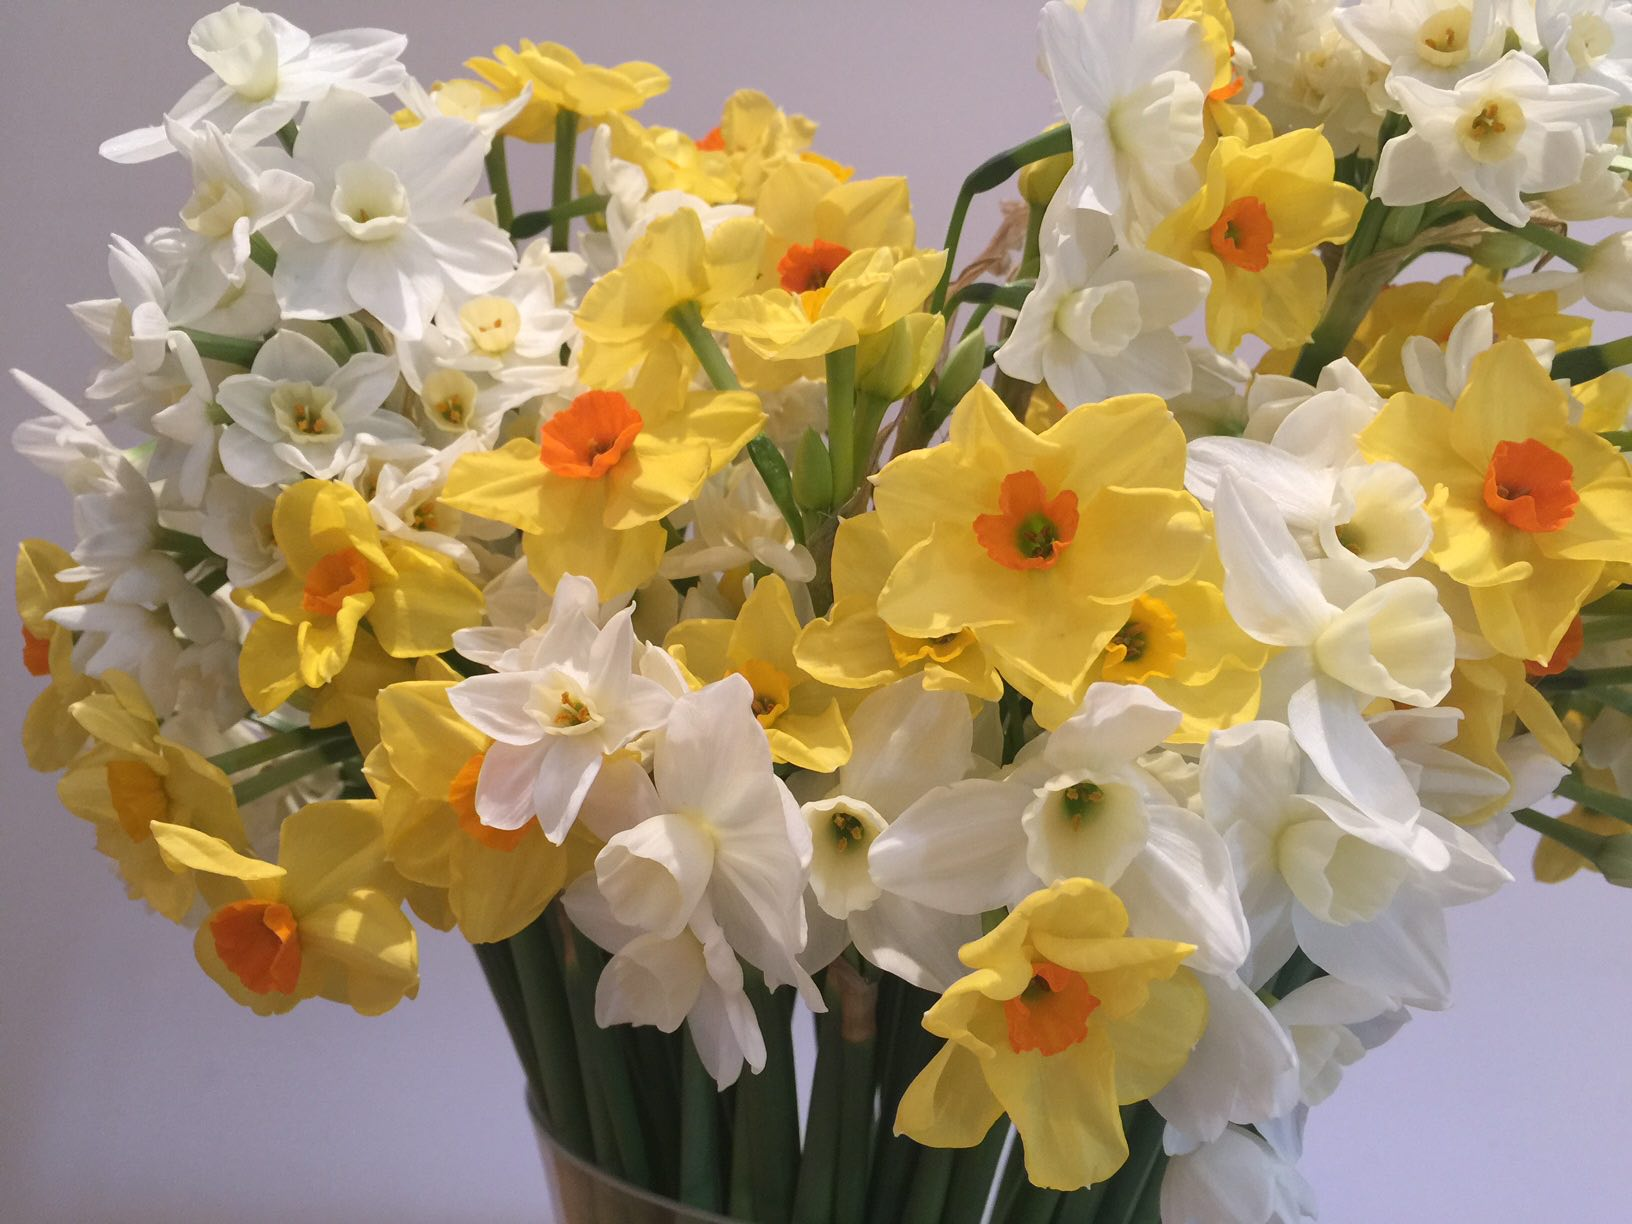 Here's a pic of my favourites flowers from Scented Narcissi taken on iPhone 6 Plus.